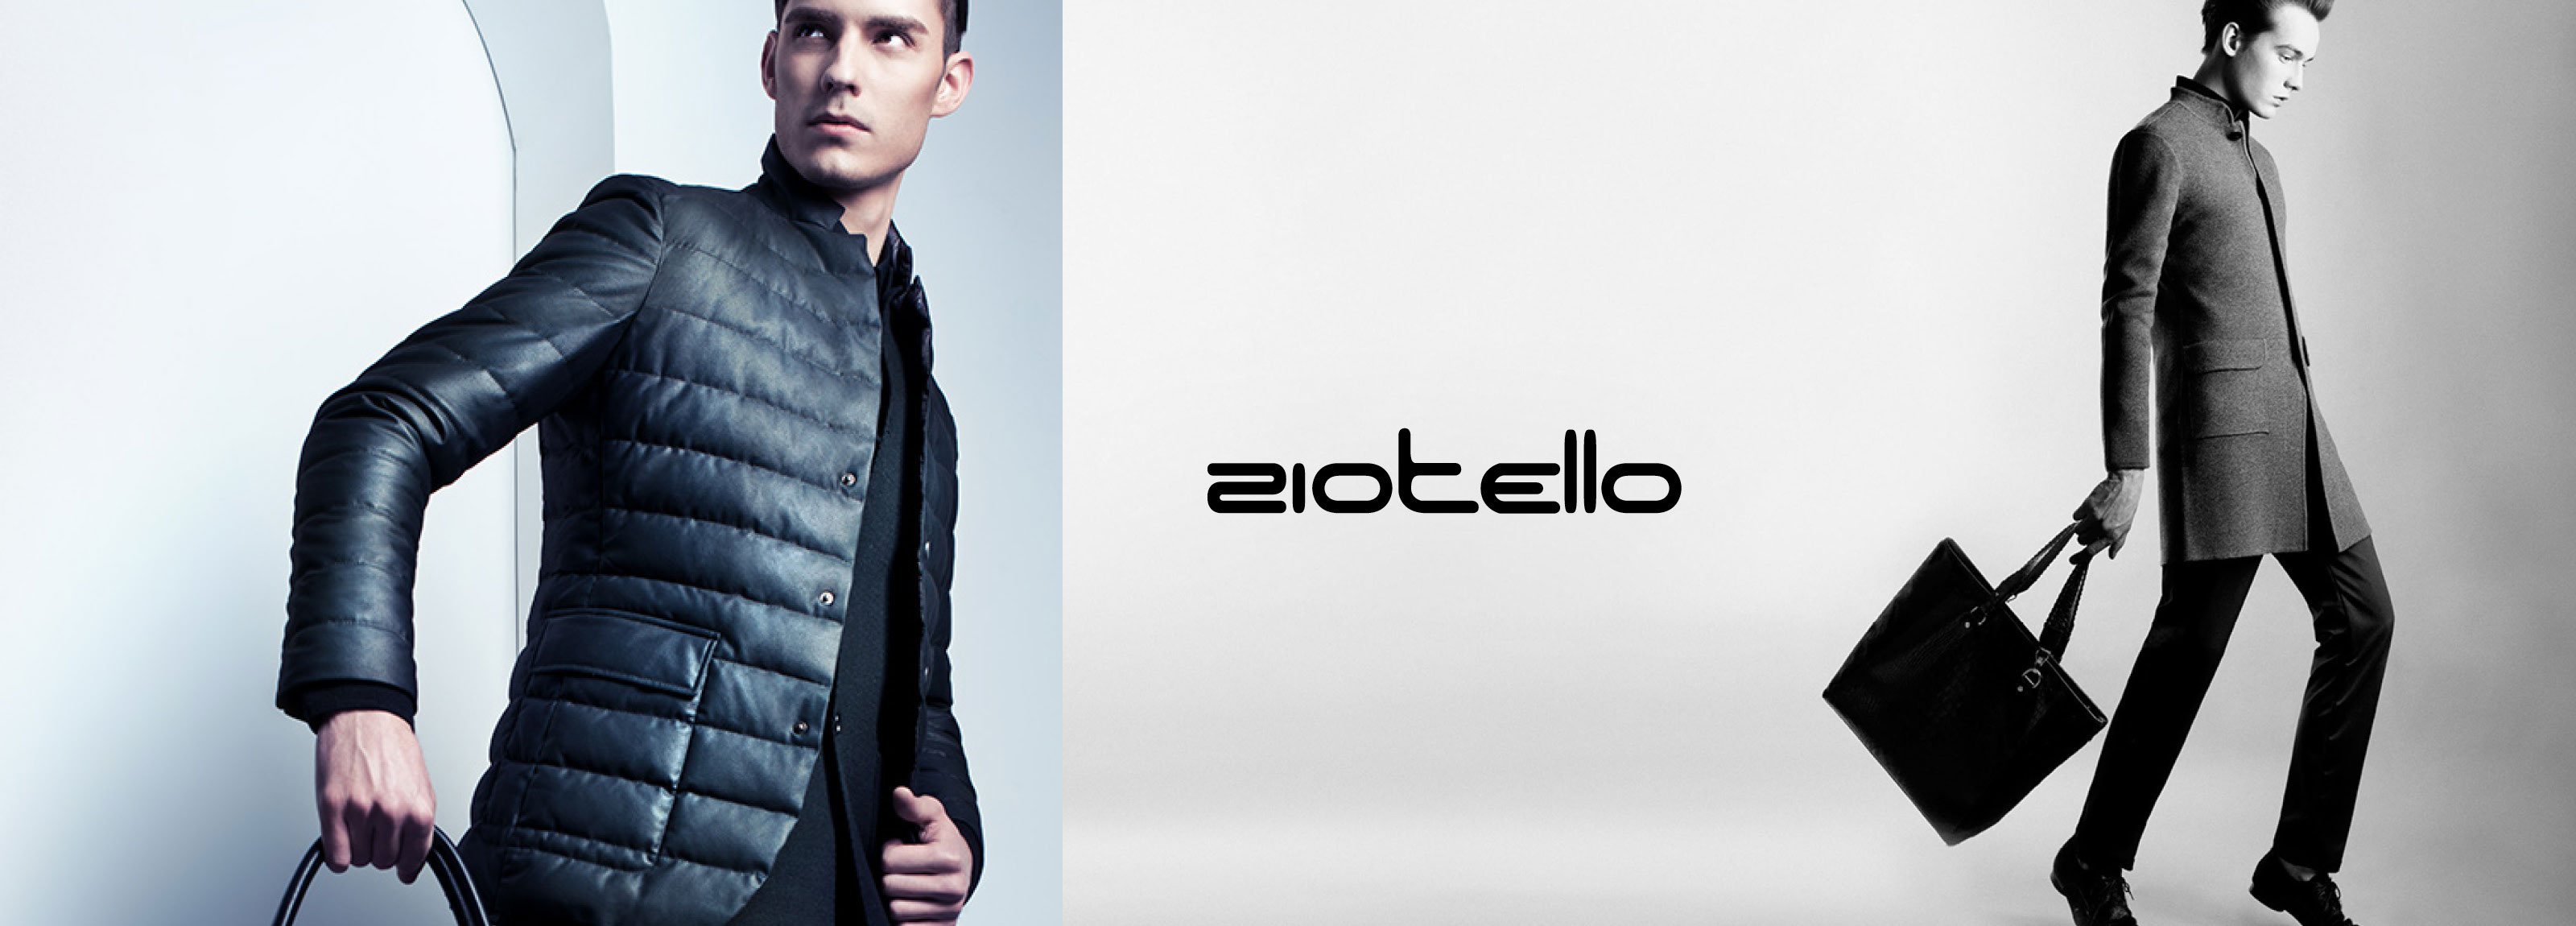 Hangar Design Group developed the communication strategy for the launch of Ziotello menswear collection